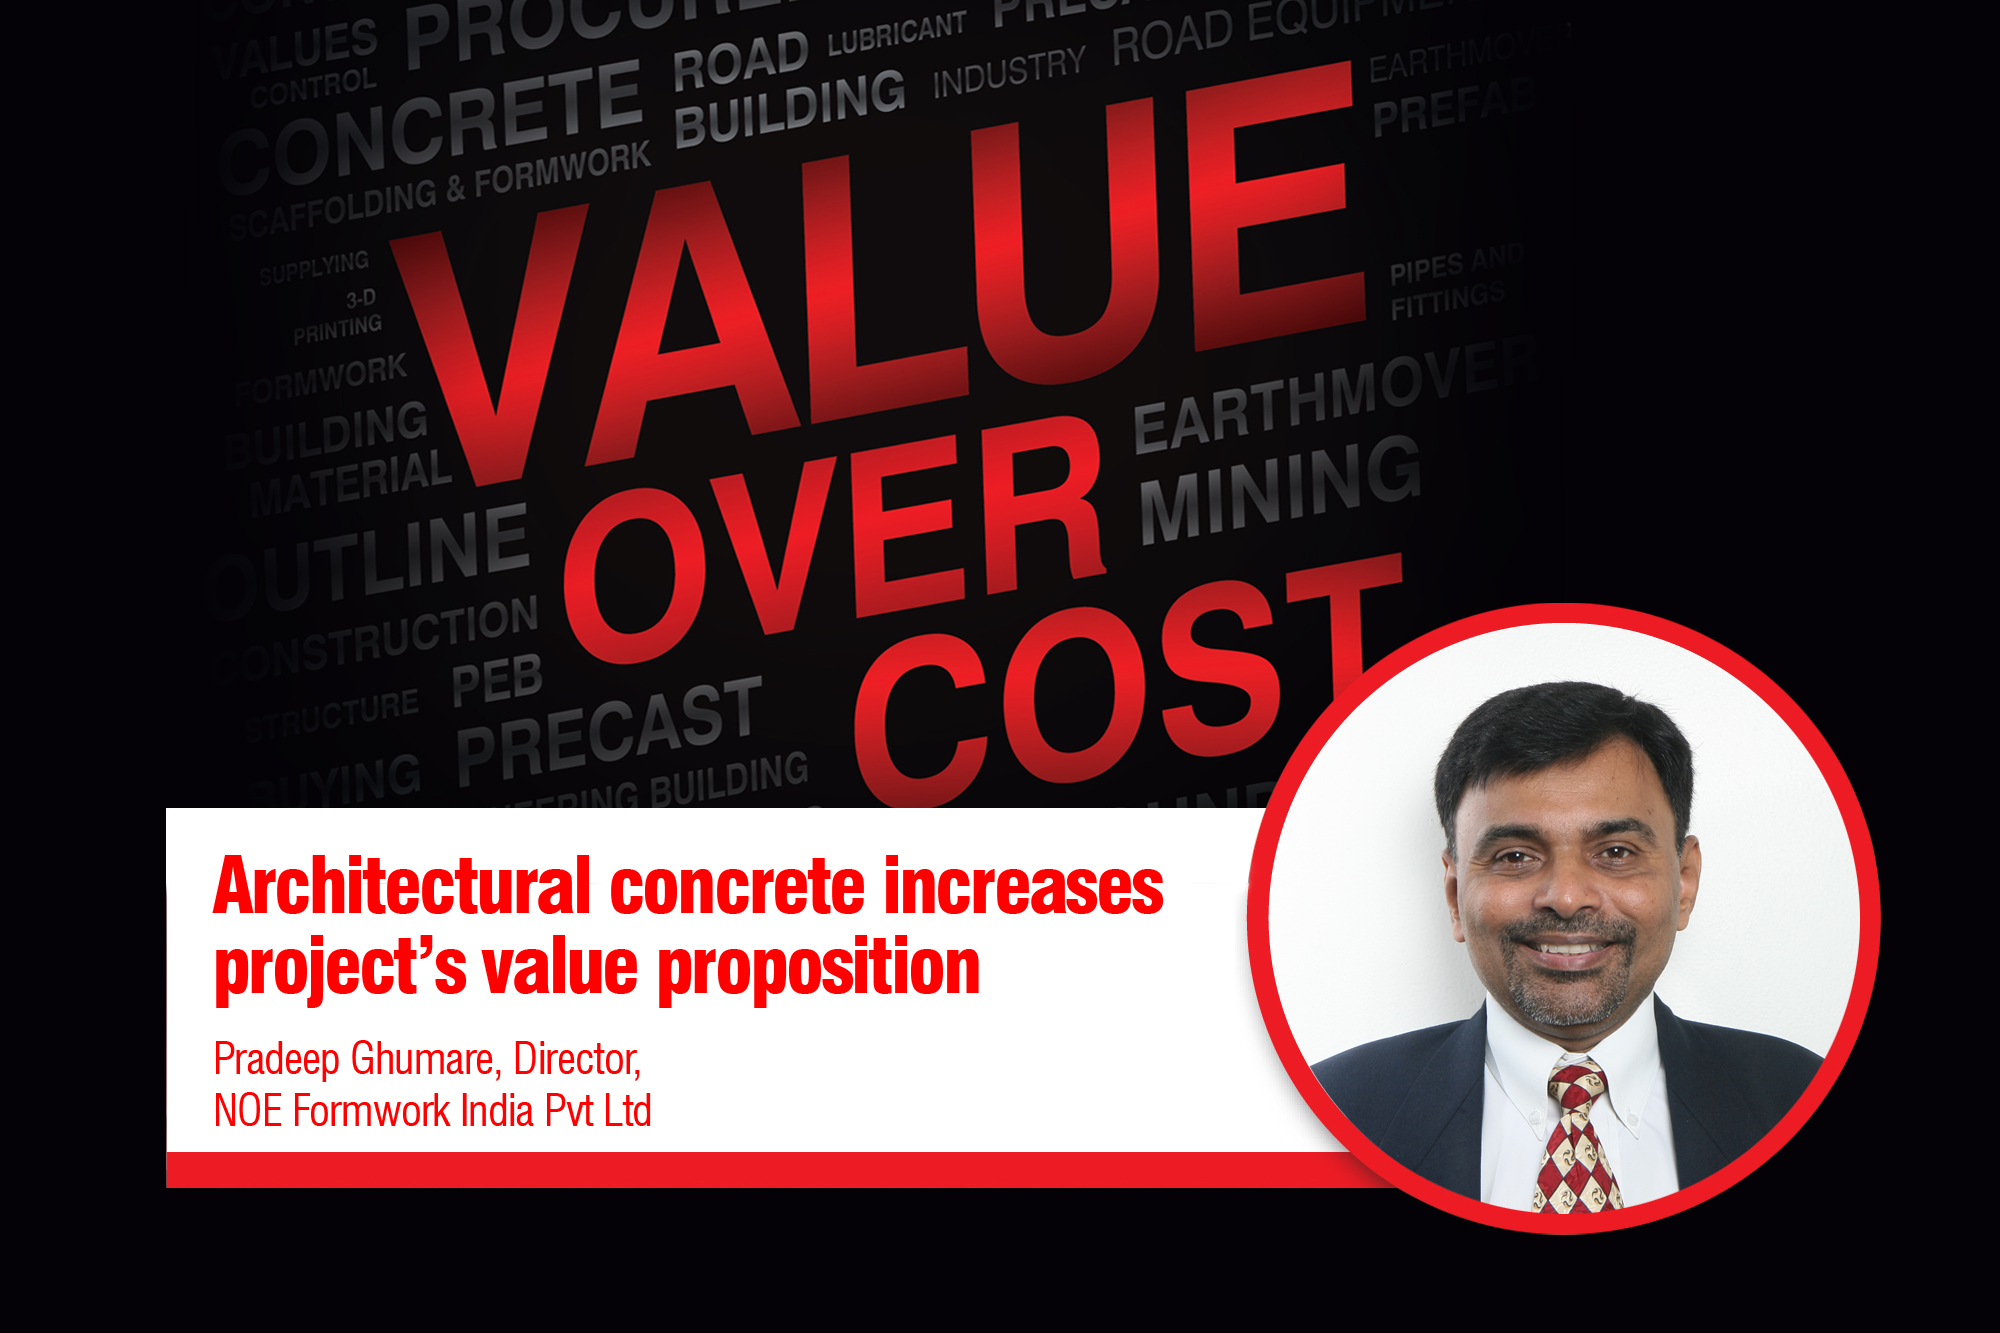 Architectural concrete increases project's value proposition